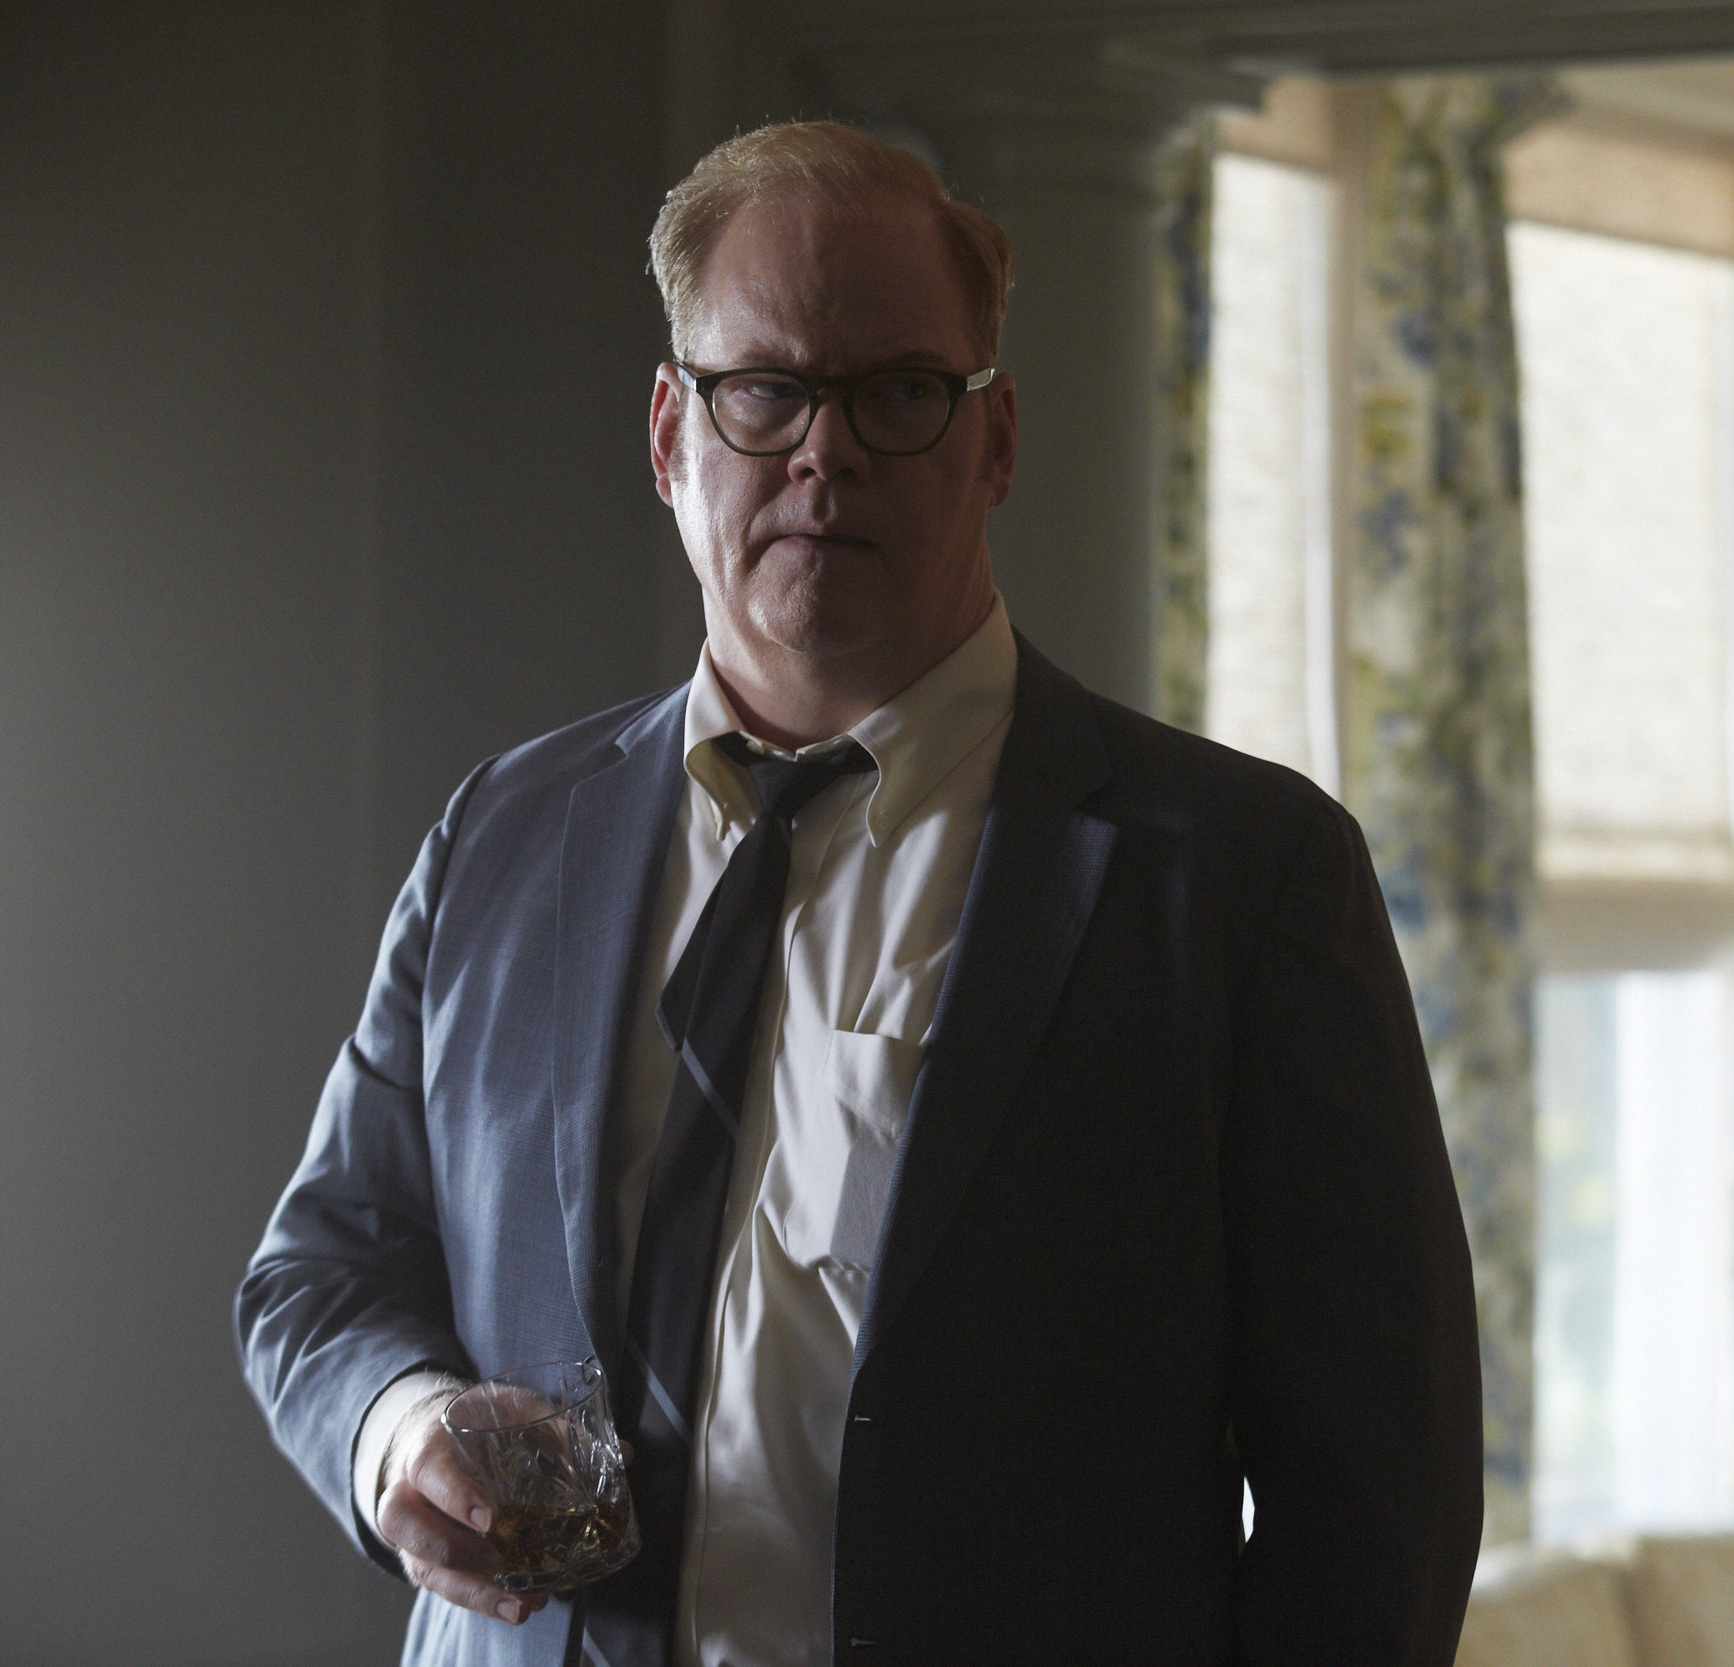 Gaffigan as Massachusetts State Attorney Paul Markham in Chappaquiddick